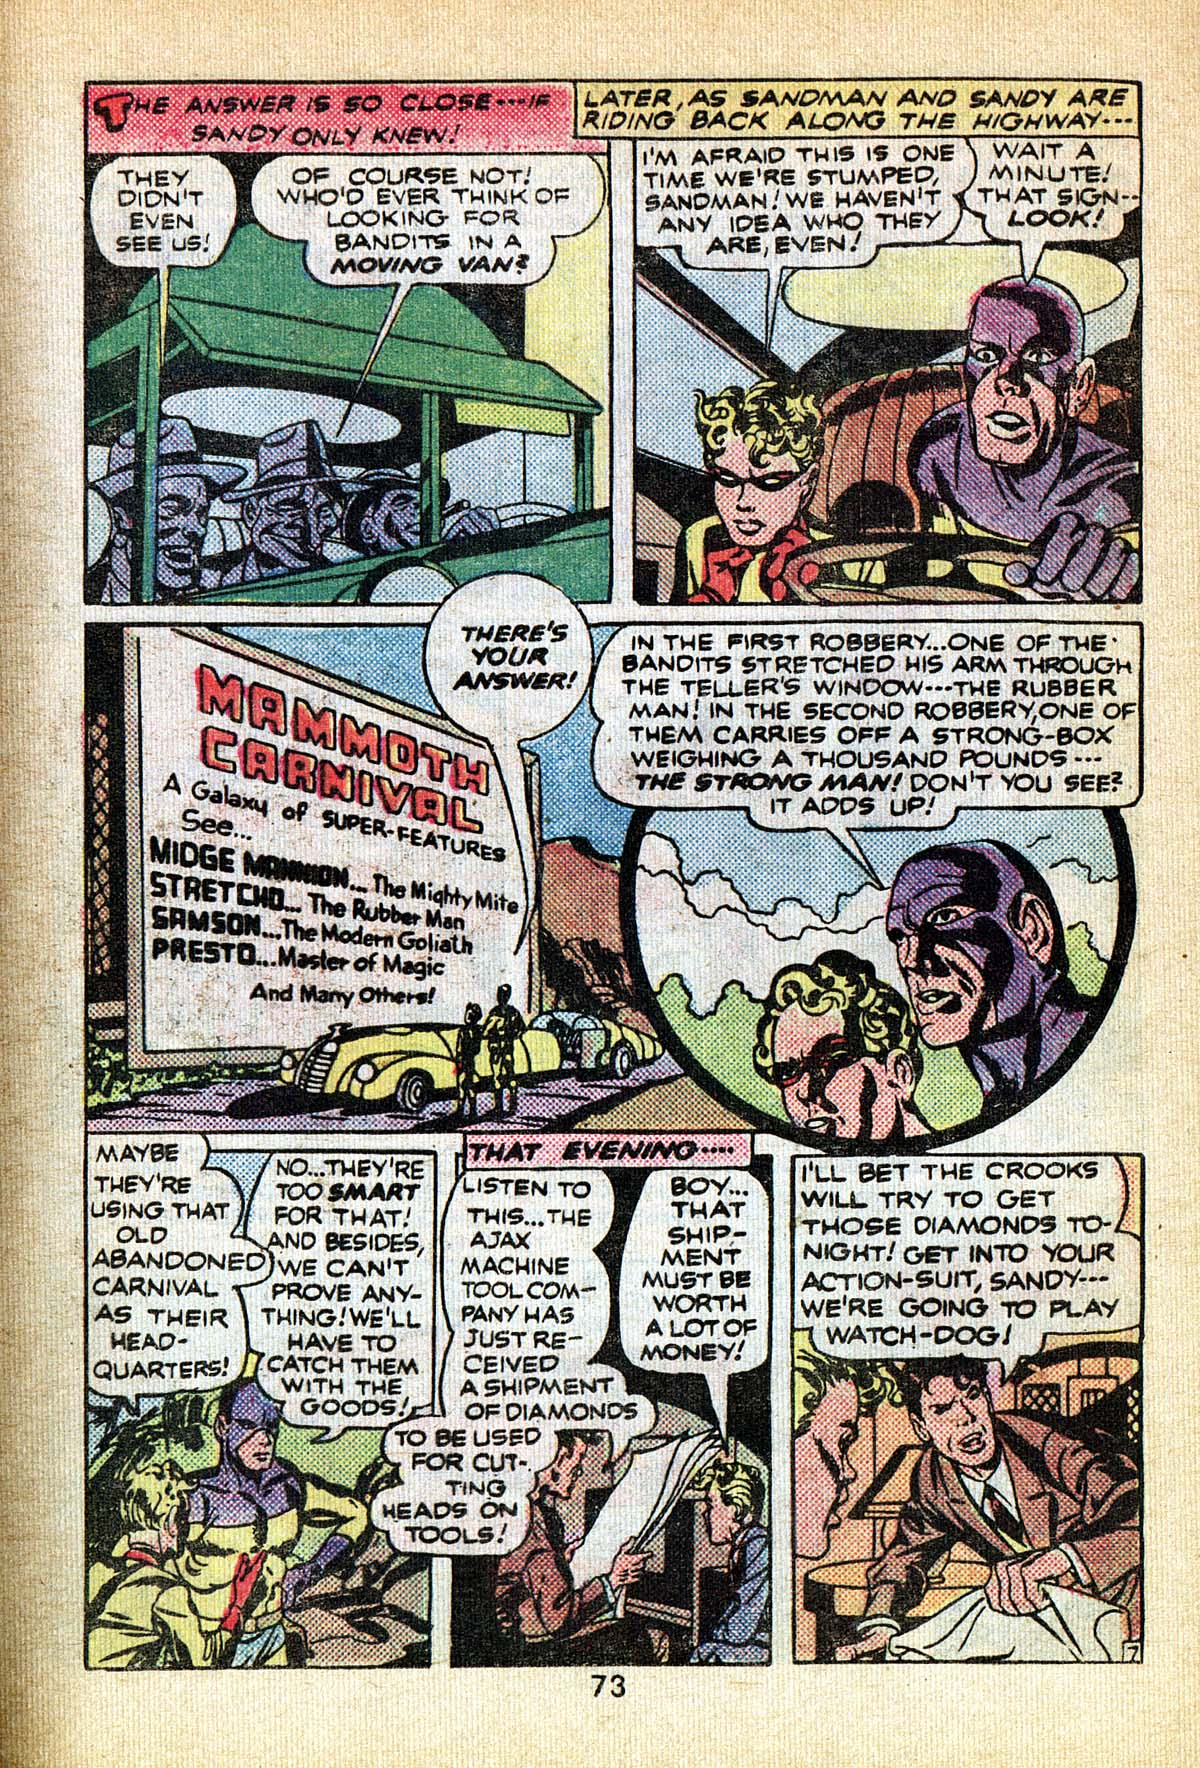 Read online Adventure Comics (1938) comic -  Issue #495 - 73